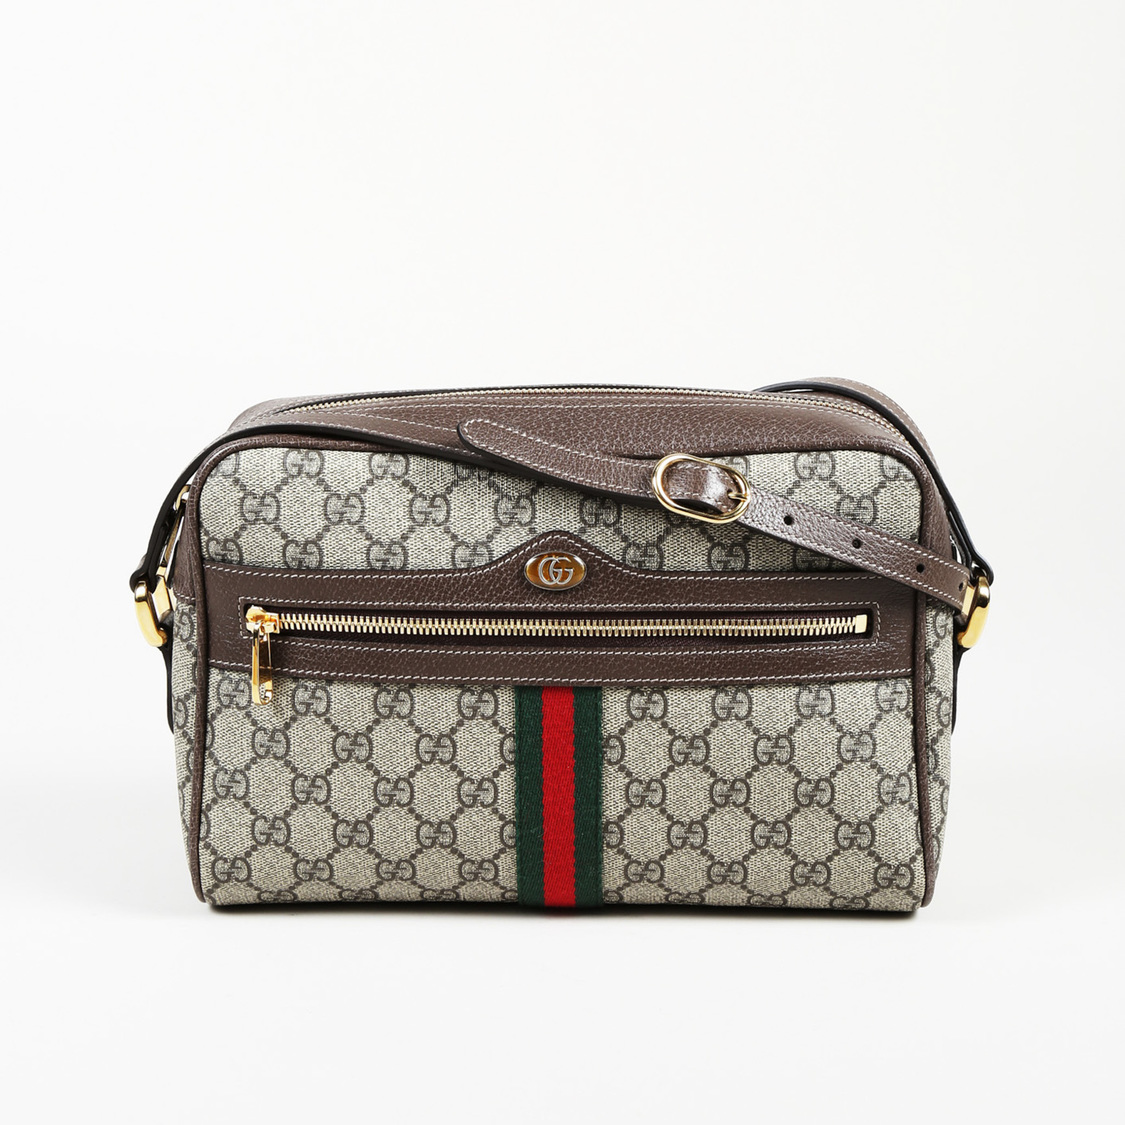 02fb2a12ad94 Details about Gucci GG Supreme Coated Canvas Small